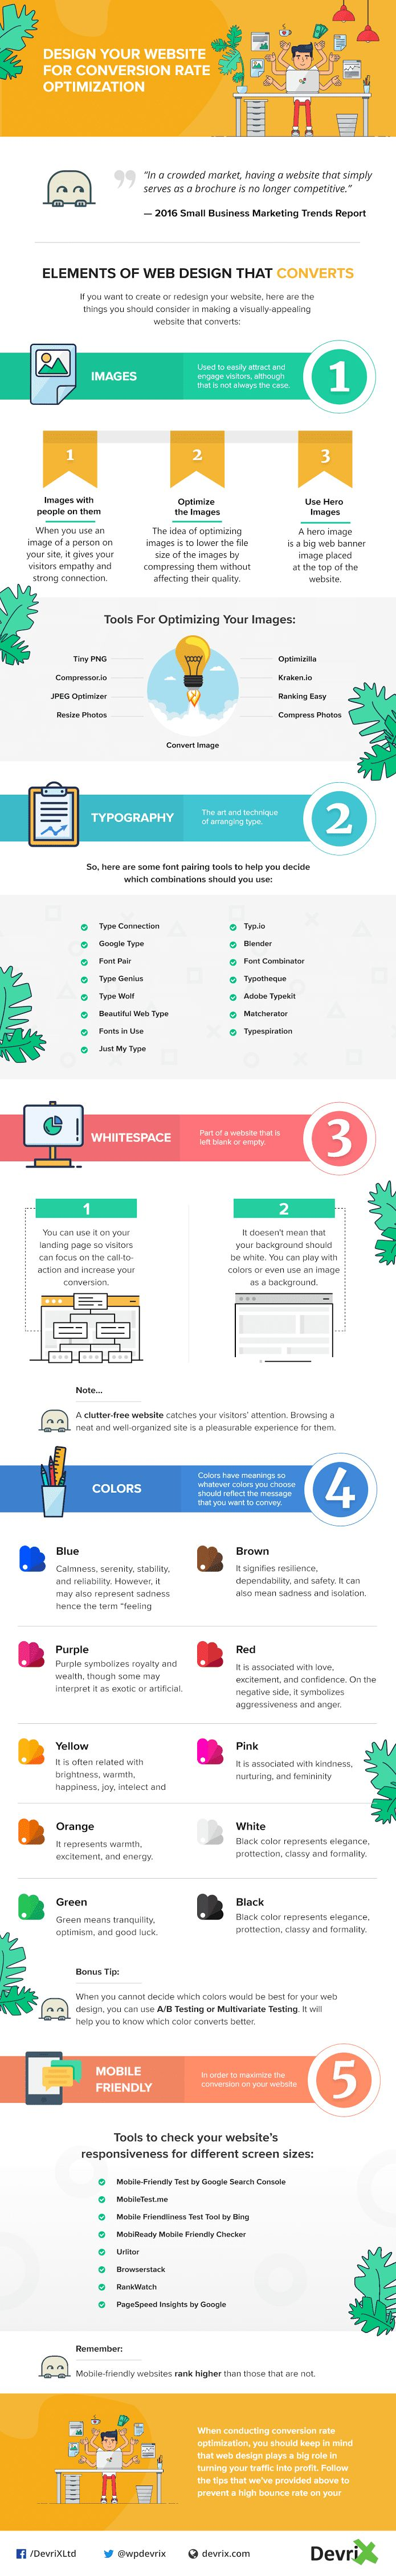 How to Design Your Website for Conversion Rate Optimization - #infographic